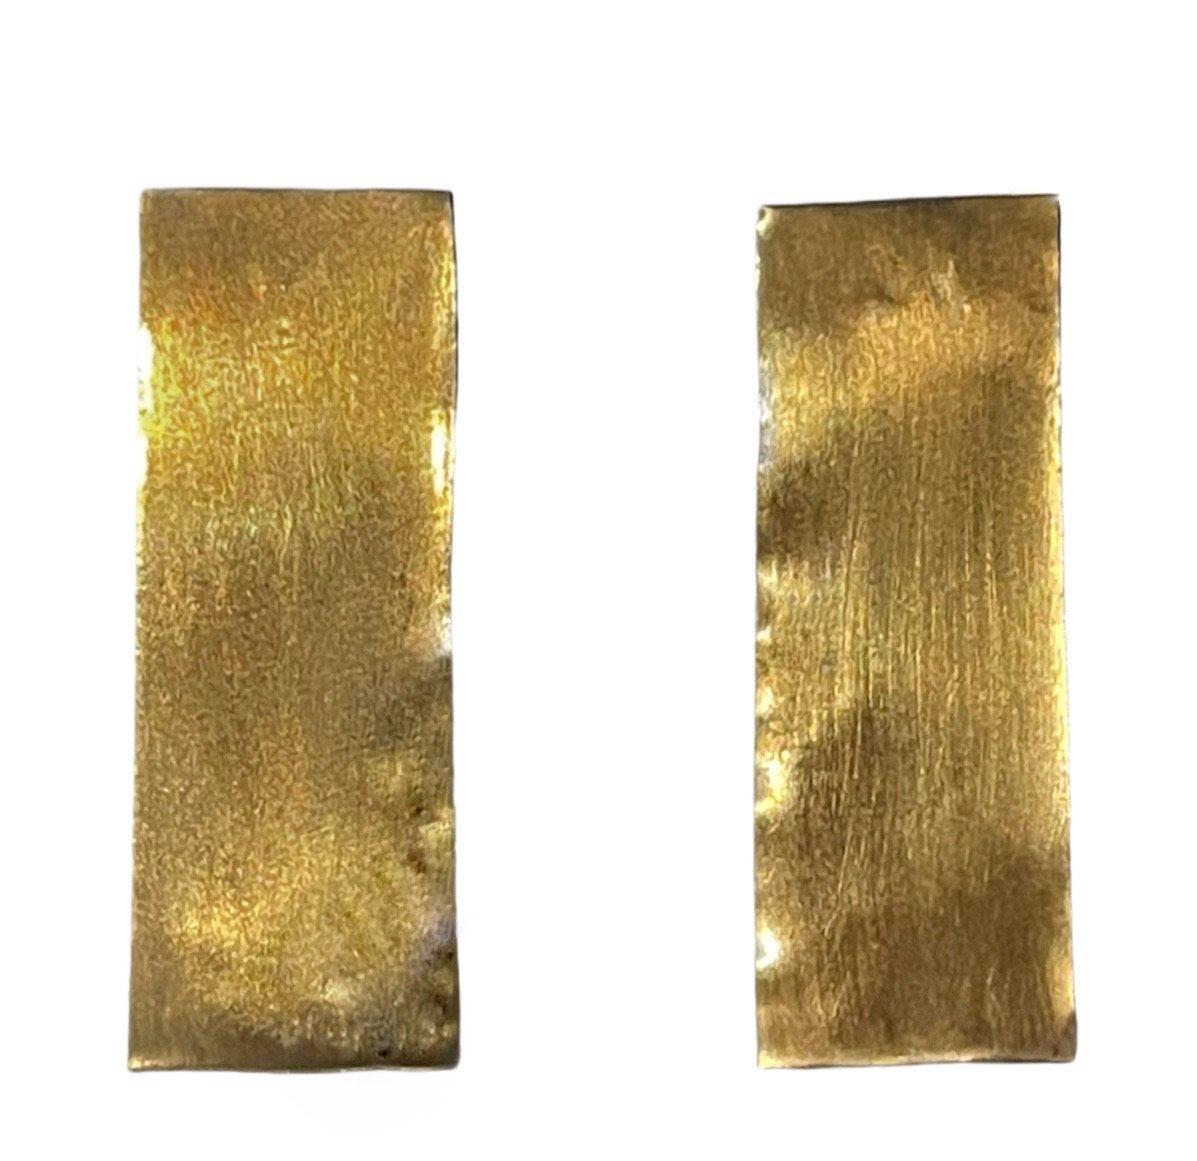 Large Rectangular Geometric Statement Earrings 24K gold plating over 925 Recycled Silver, Made to order- 8 days lead time - natoorio